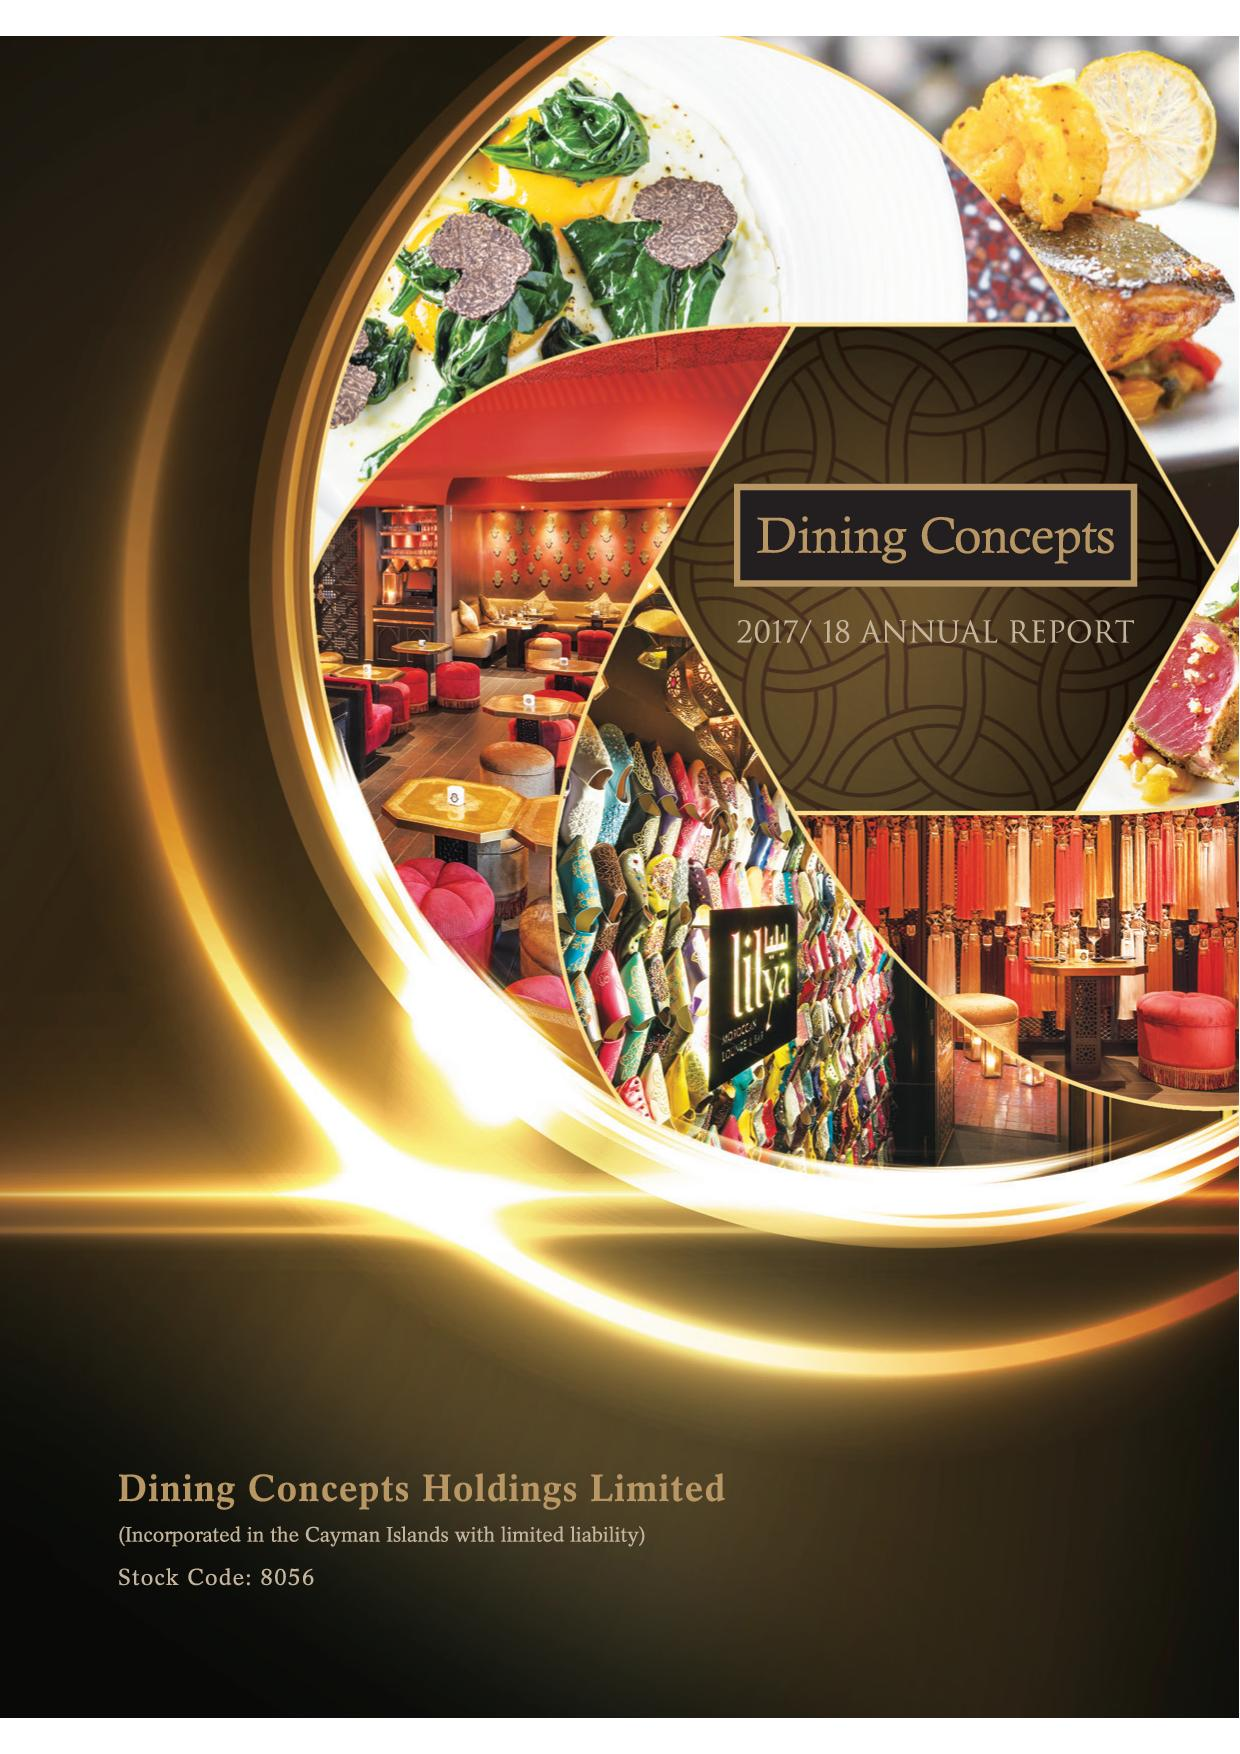 Dining Concepts Holdings Limited